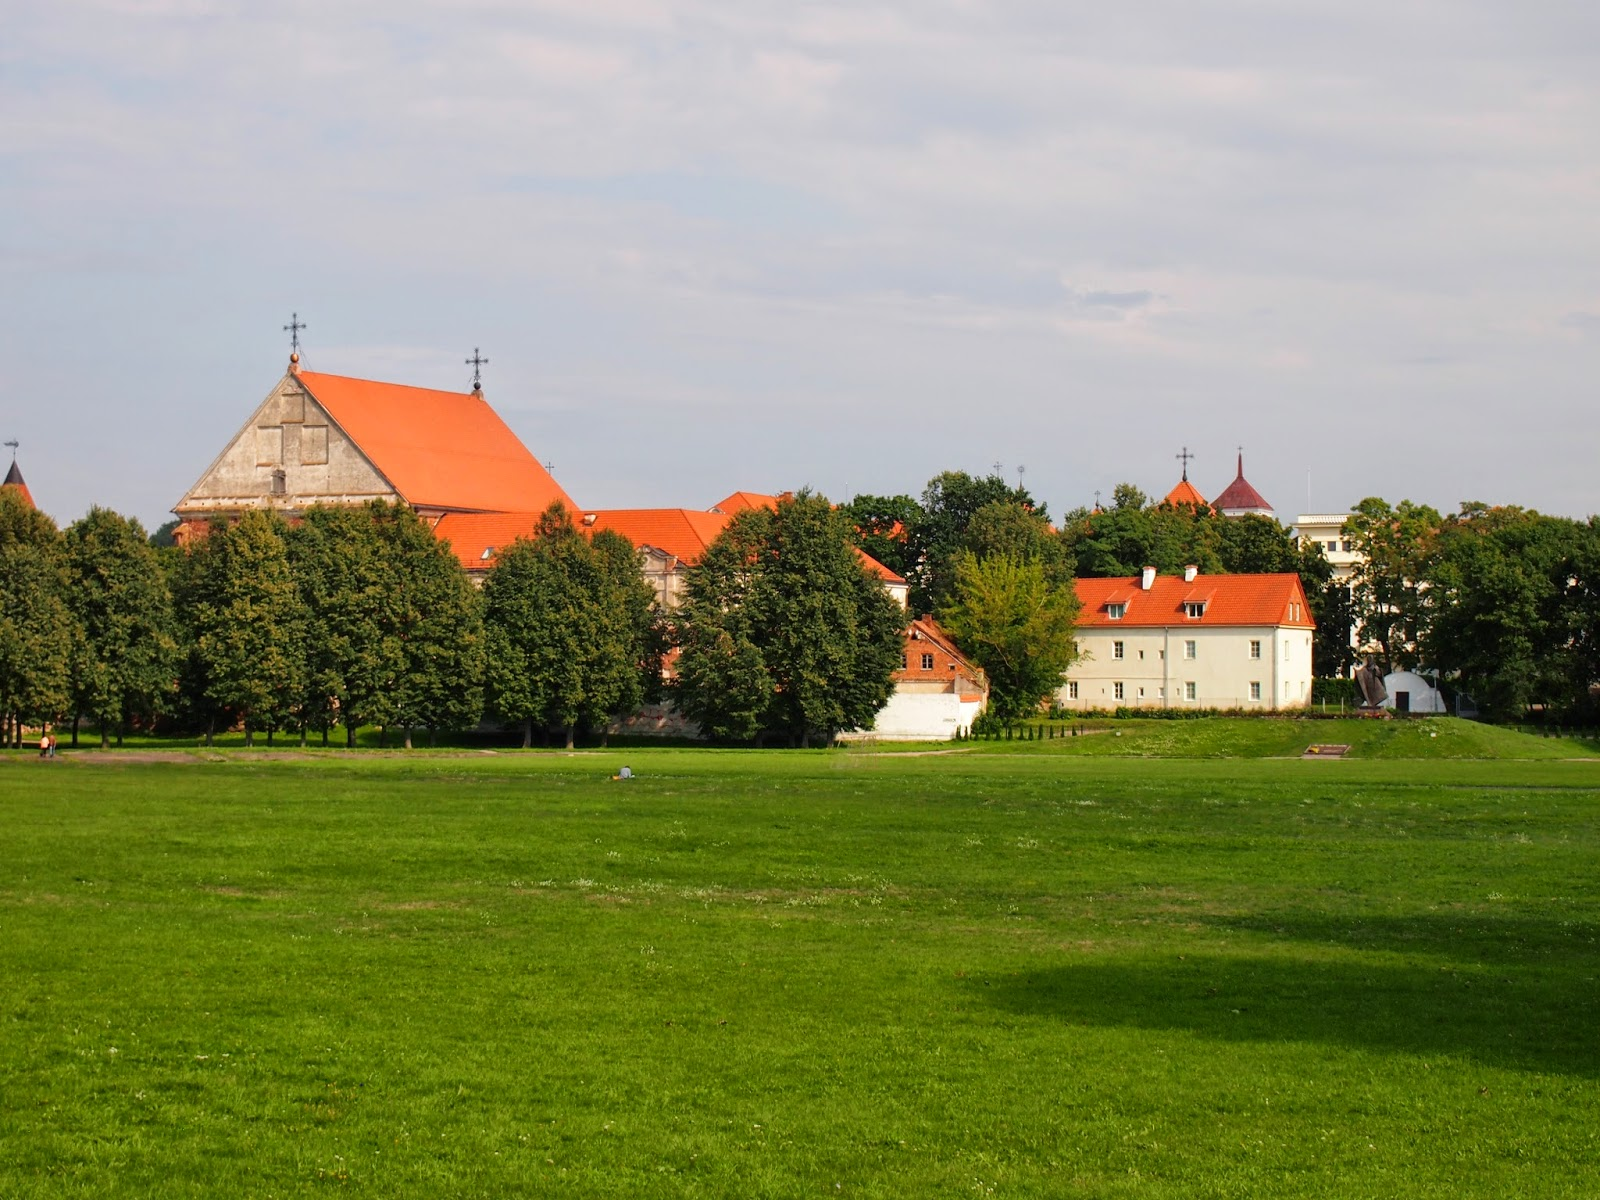 looking at the old town of Kaunas from the park